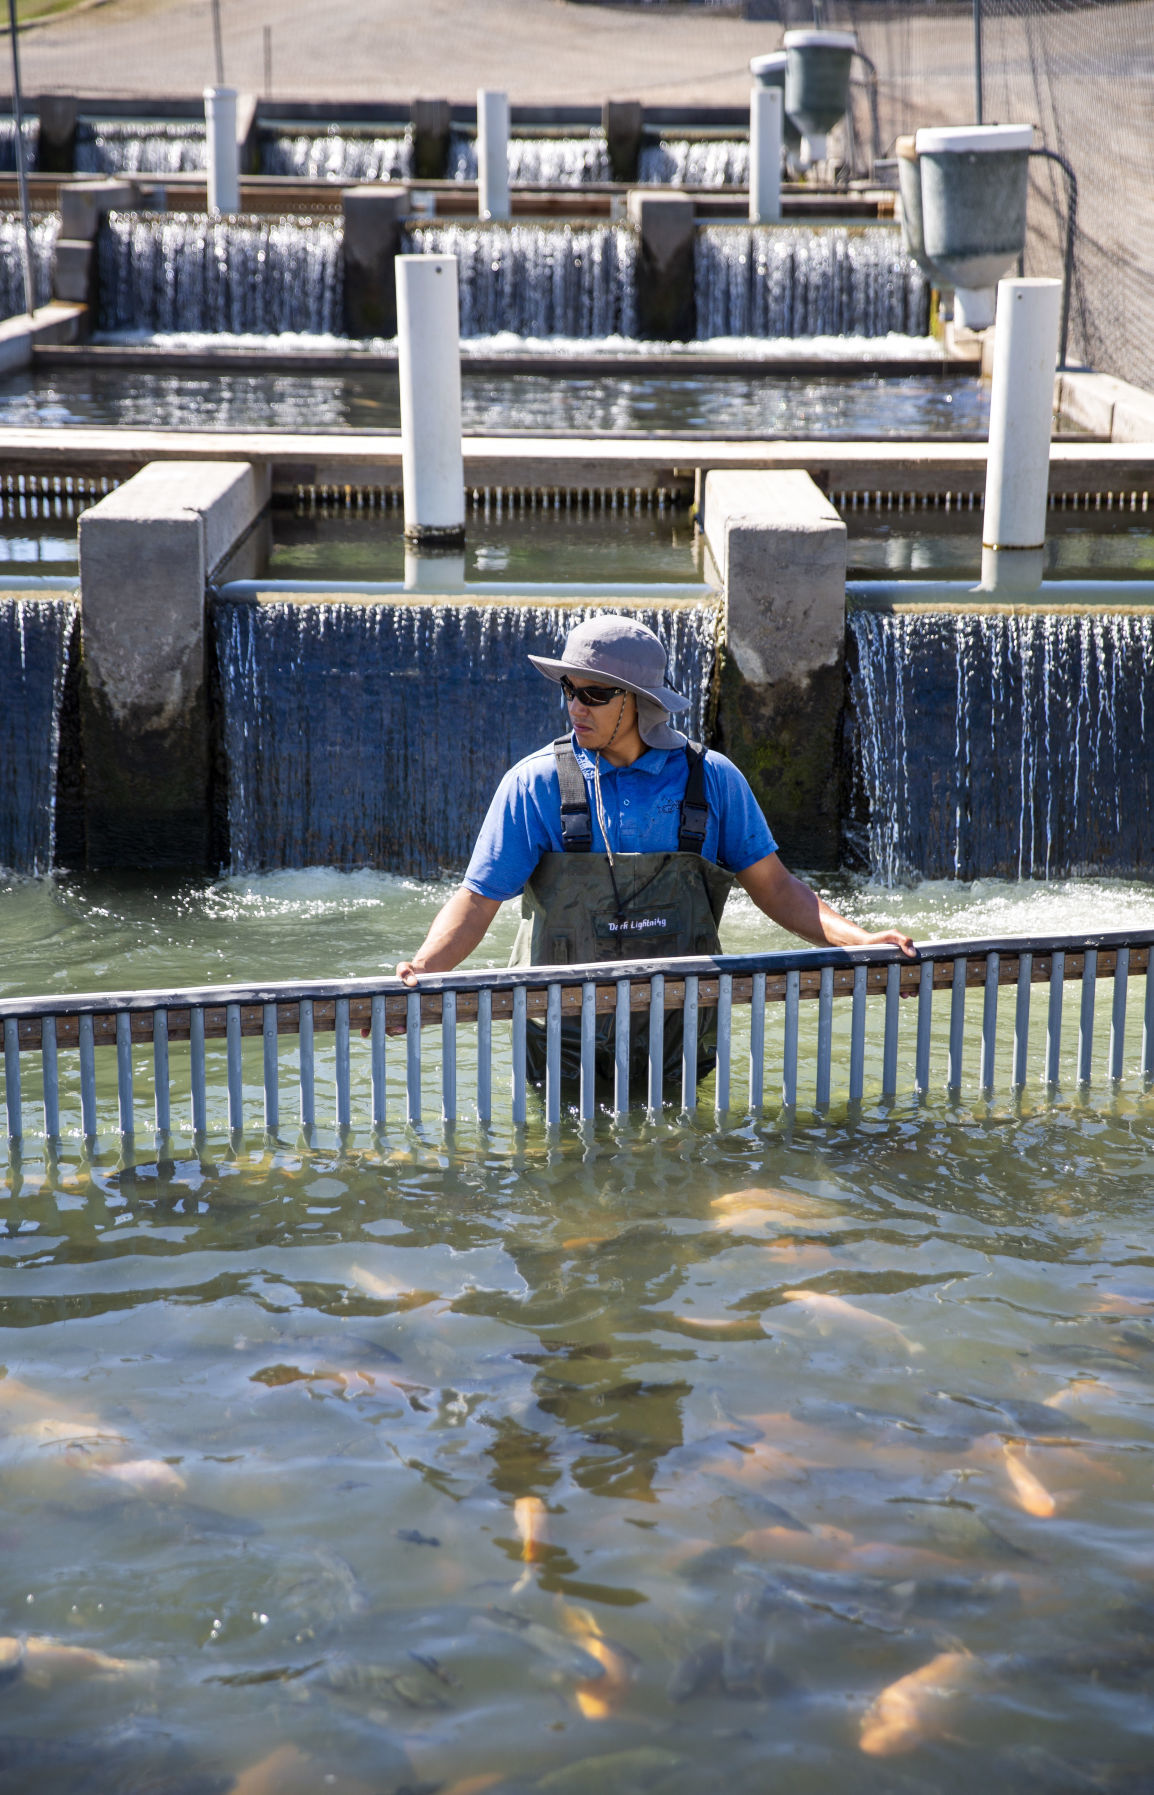 Aquaculture industry takes a hit with coronavirus closures